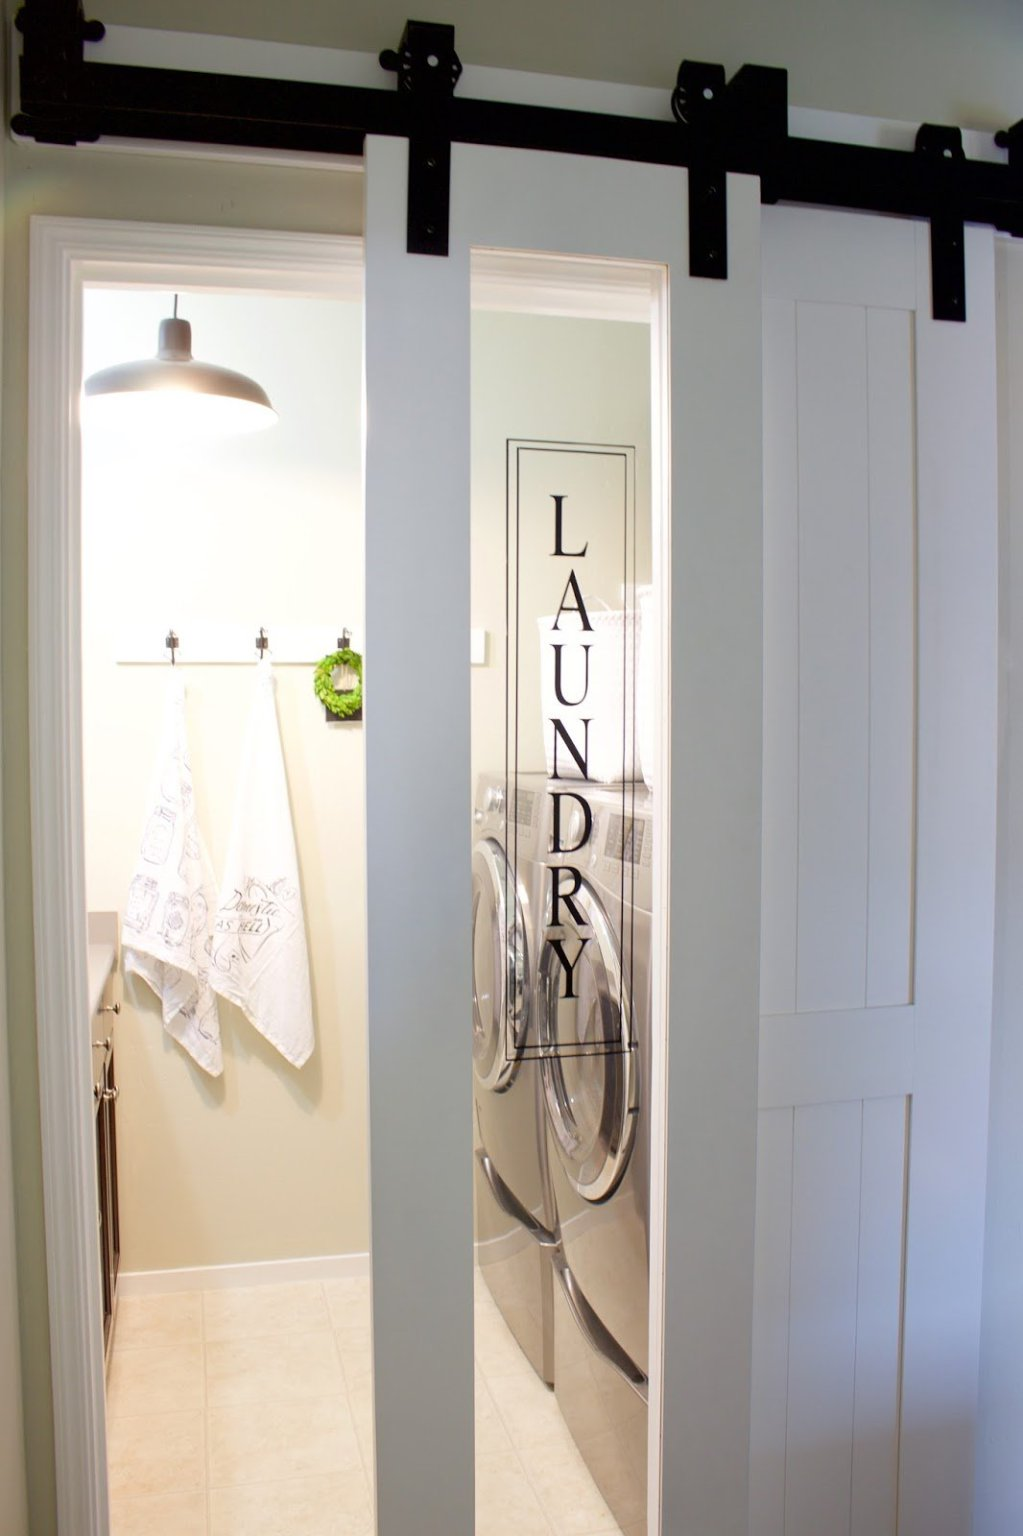 27 awesome sliding barn door ideas for the home homelovr for Ideas de lavaderos